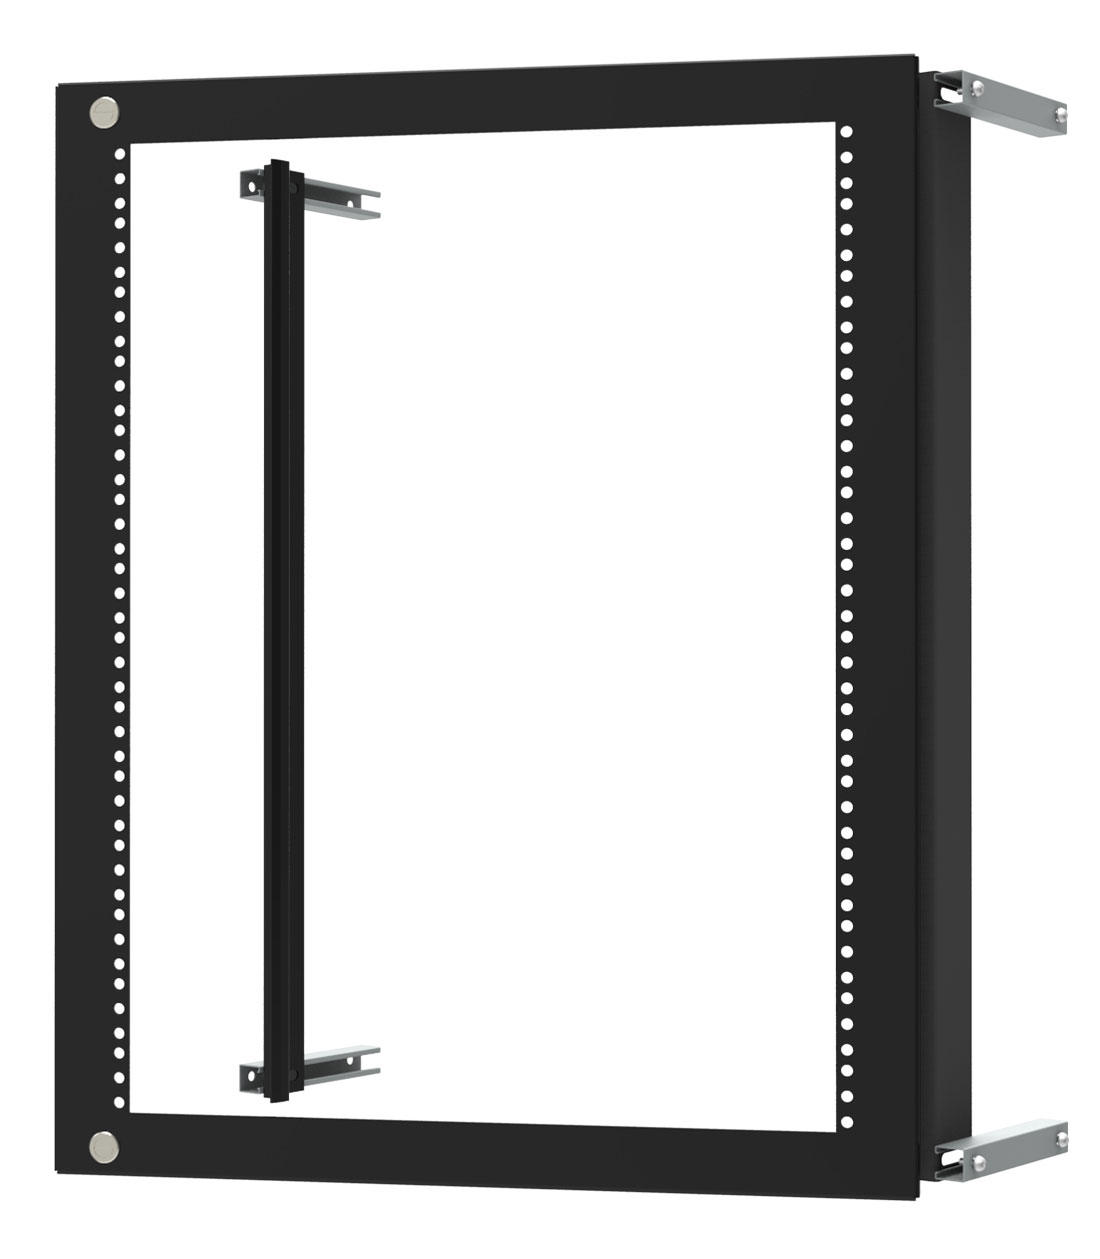 Eclipse Swing Frame ESF Series For use with Eclipse Enclosure Series